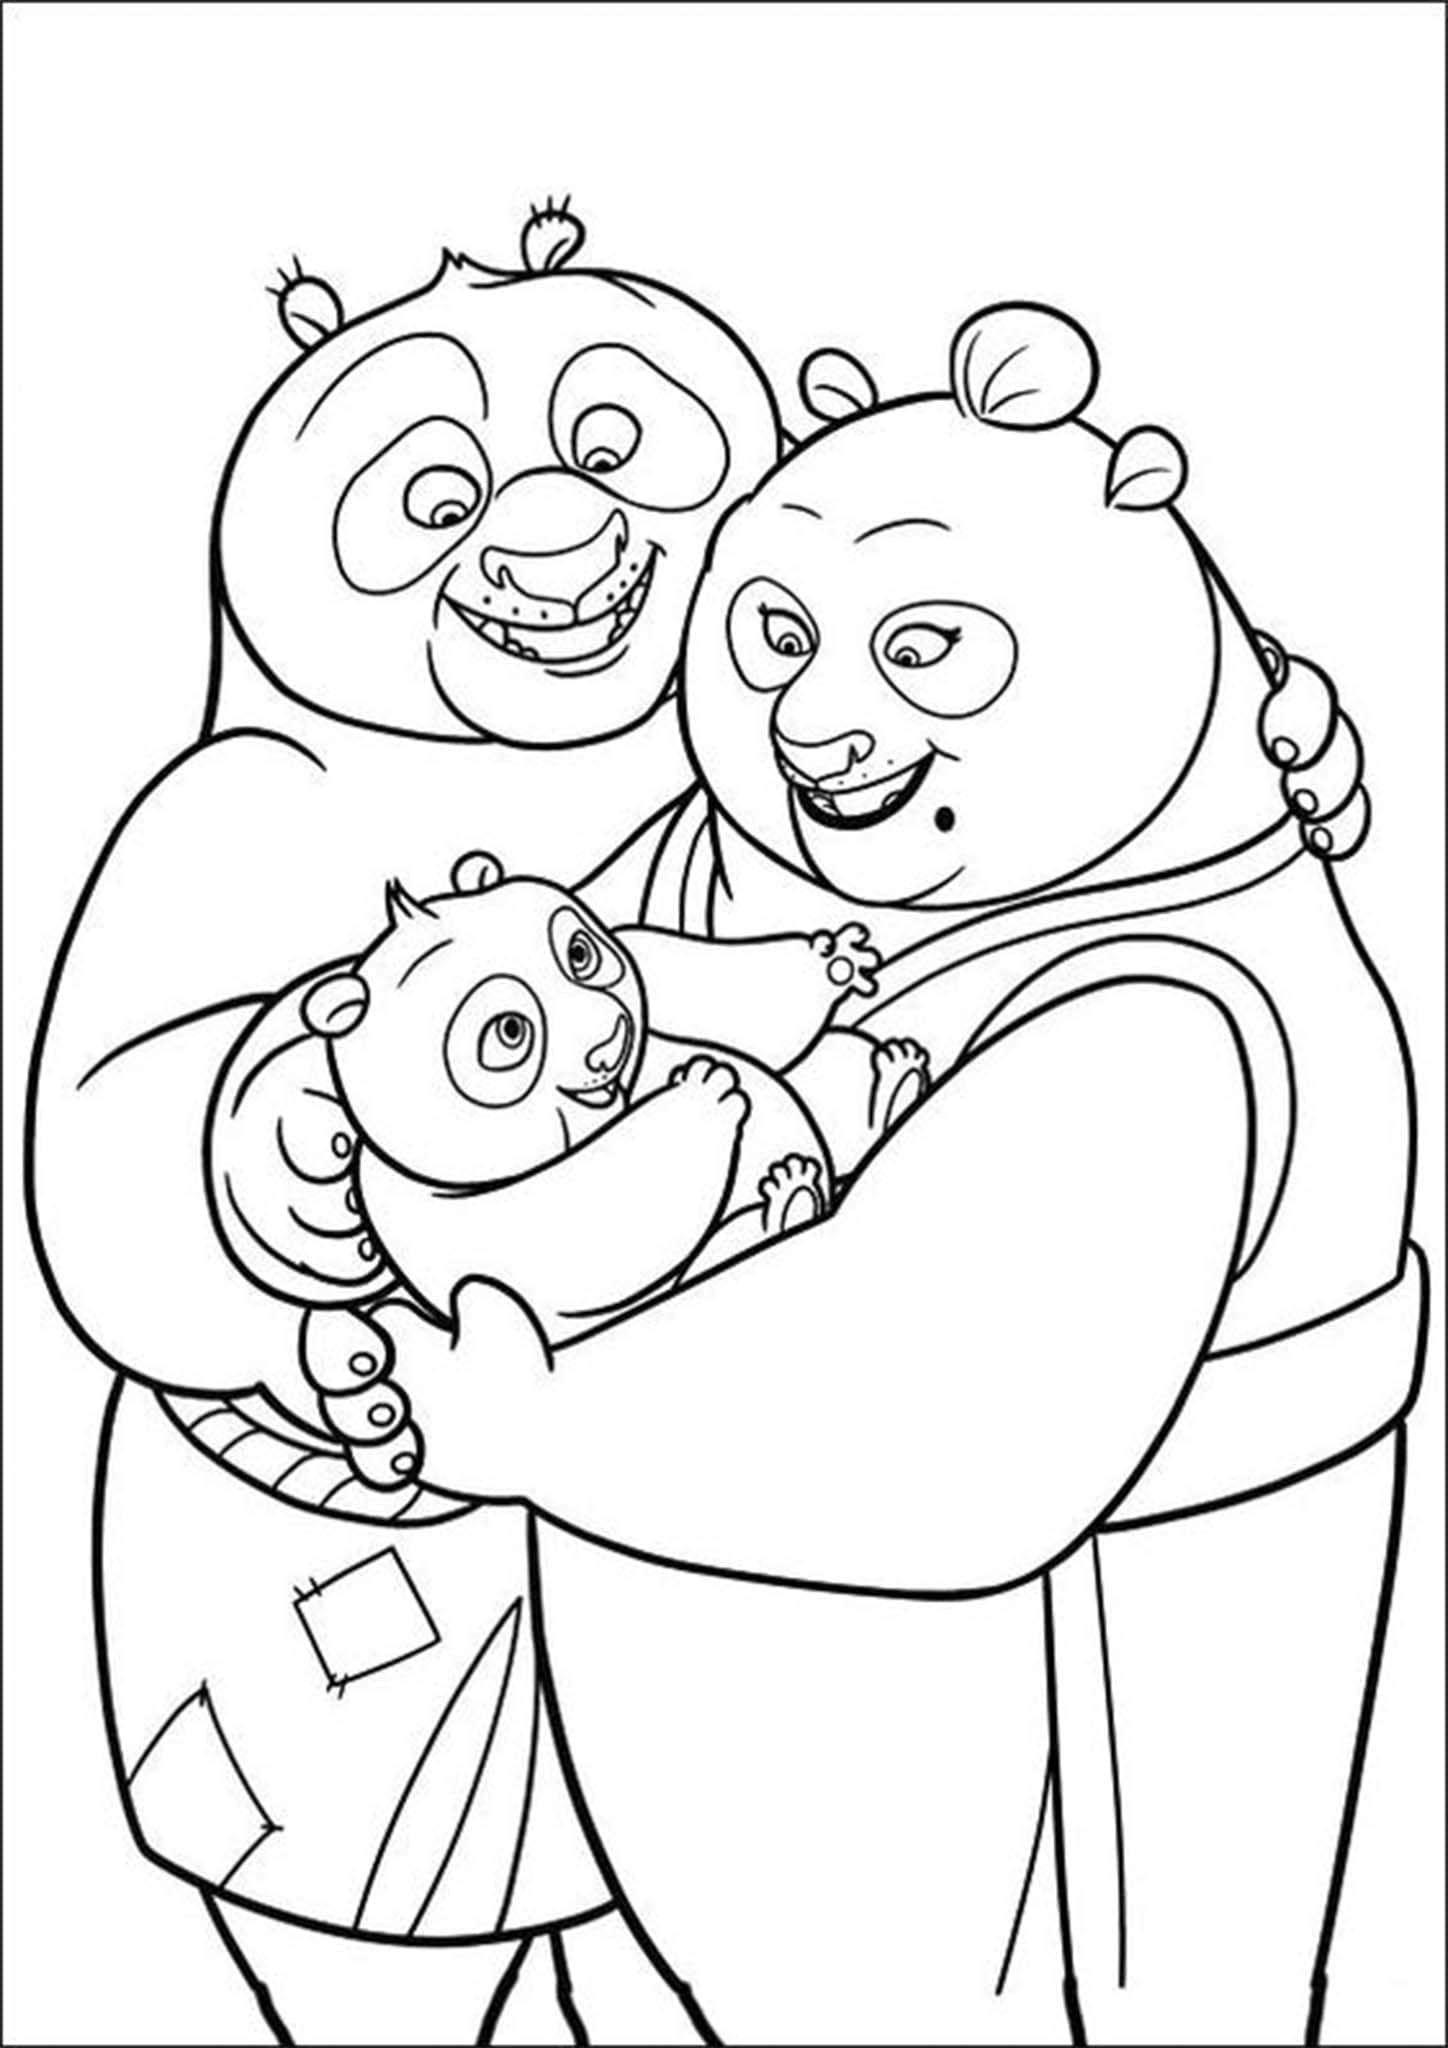 simple panda coloring pages free easy to print panda coloring pages in 2020 panda simple pages coloring panda